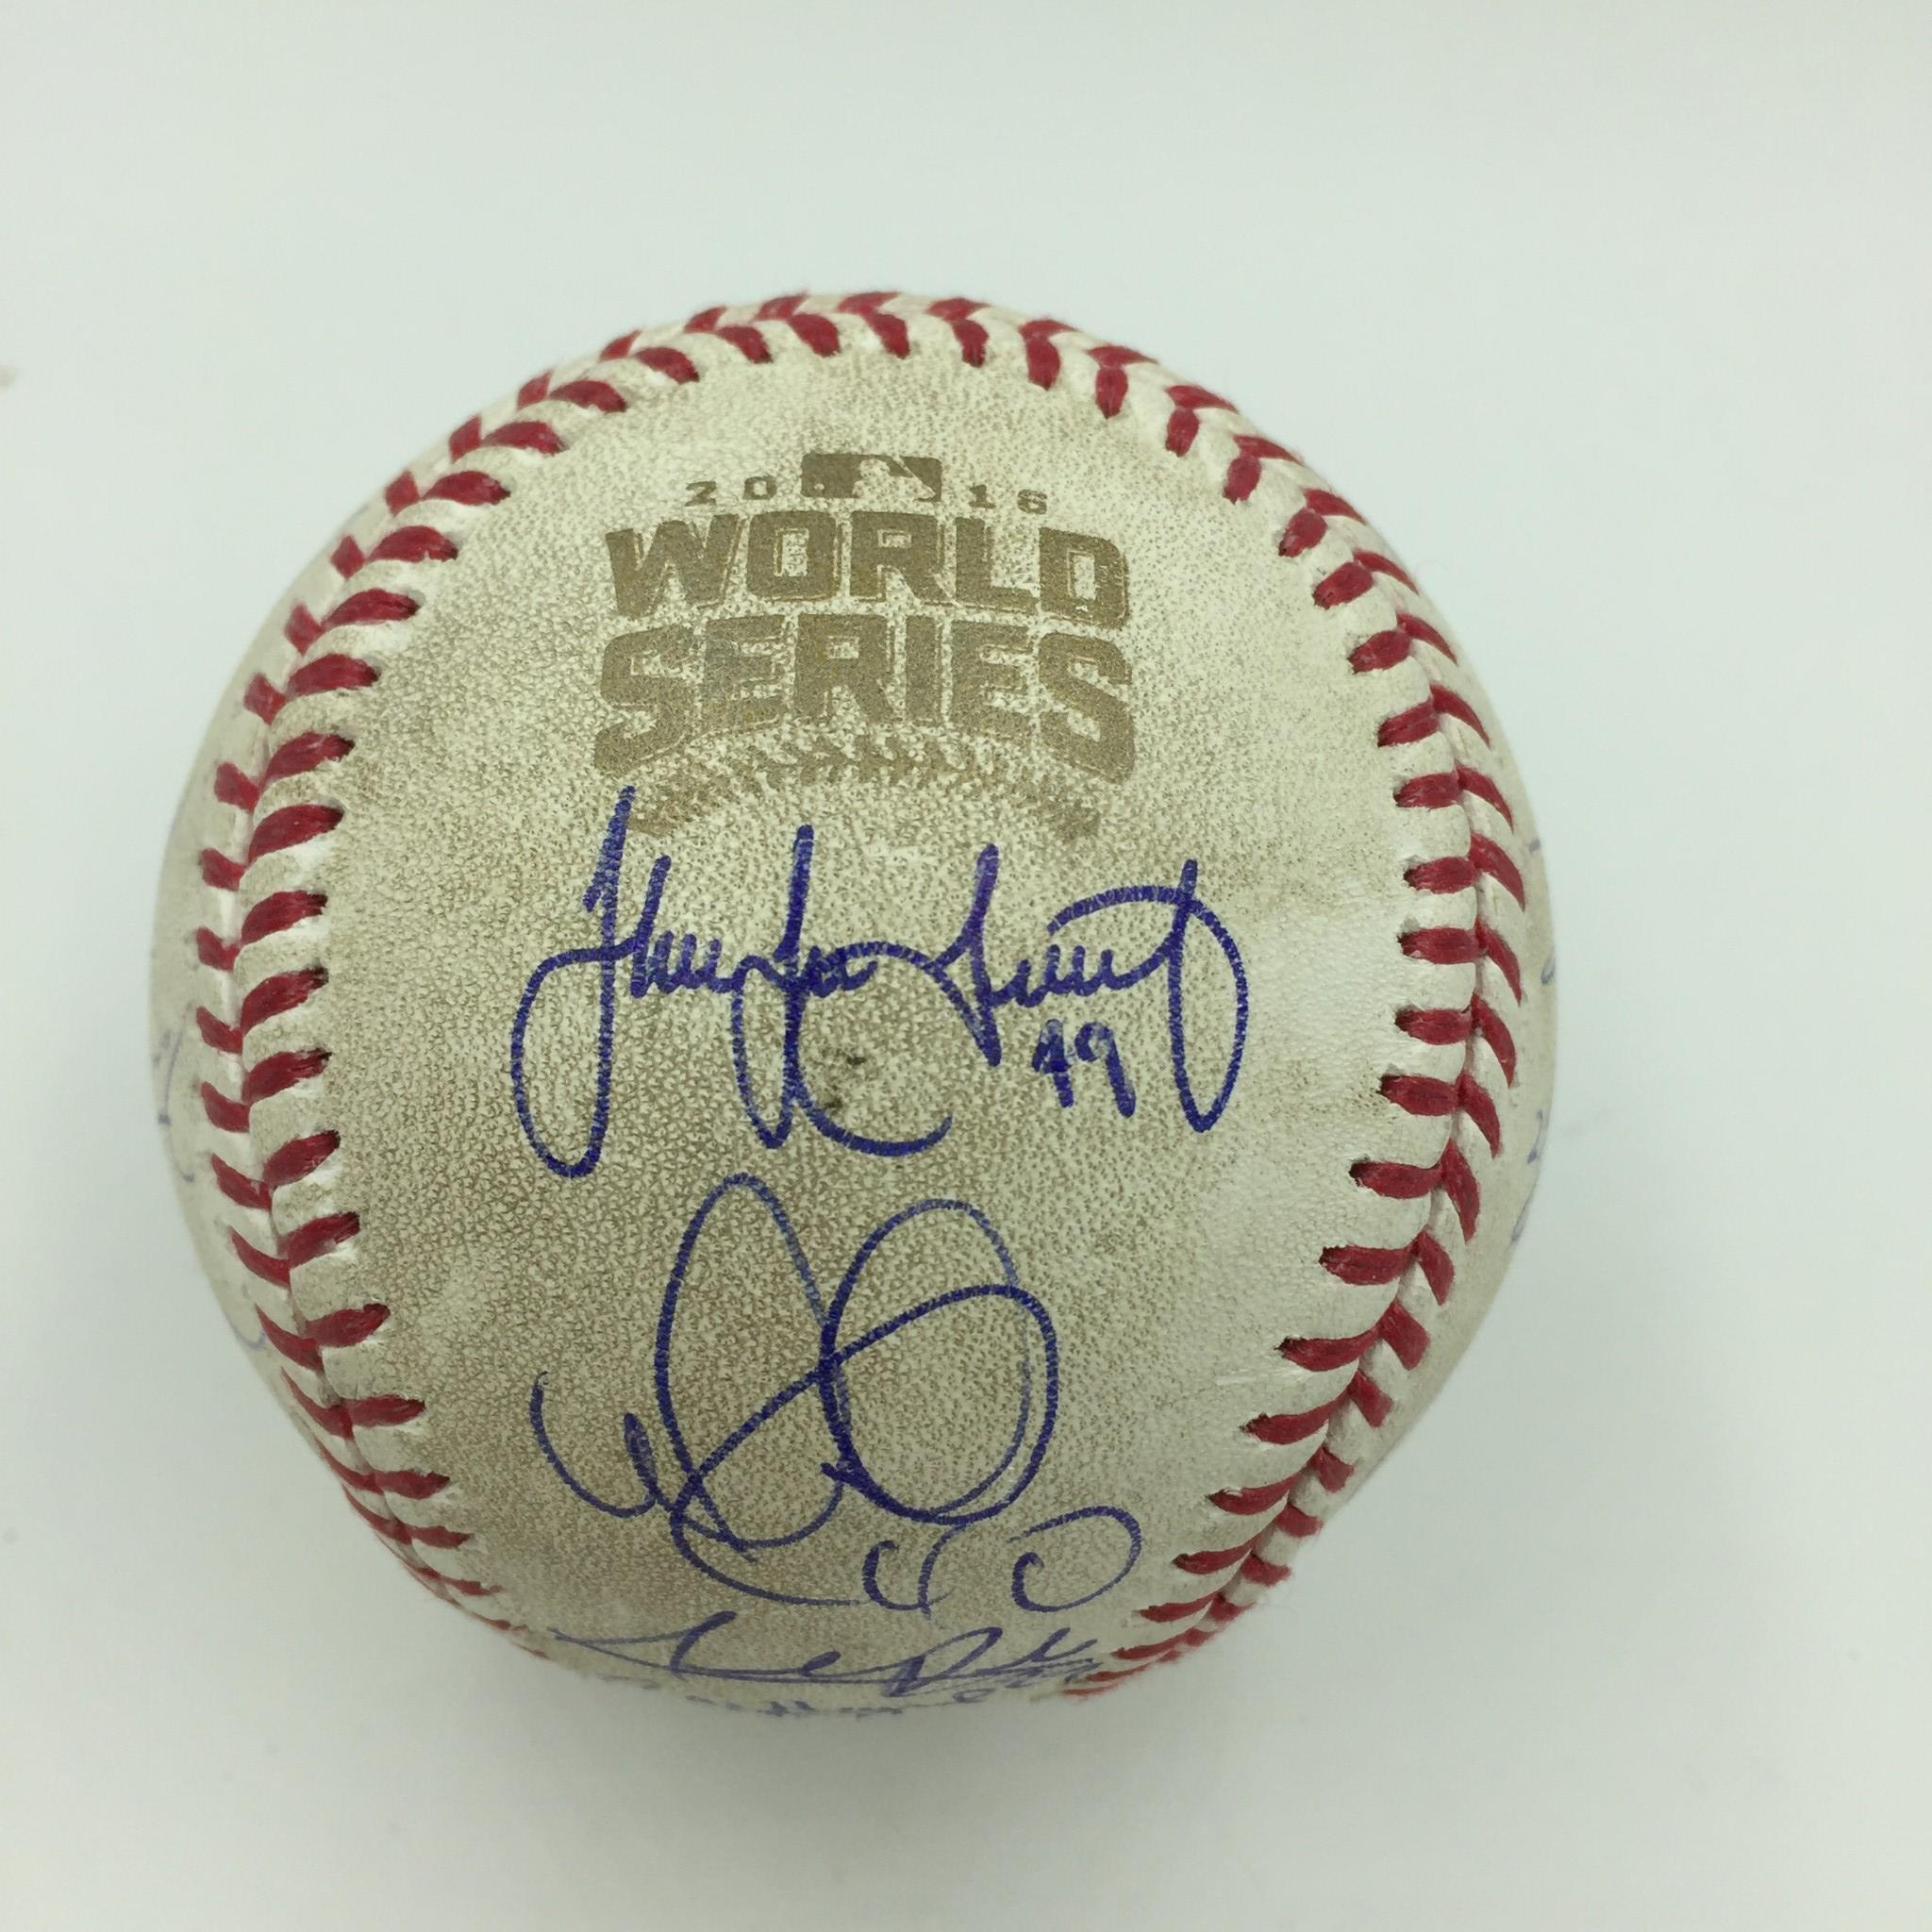 Sports Mem, Cards & Fan Shop Sports Mem, Cards & Fan Shop John Lackey Autographed Signed 2016 World Series Baseball Ball Beckett Bas Coa Buy One Give One